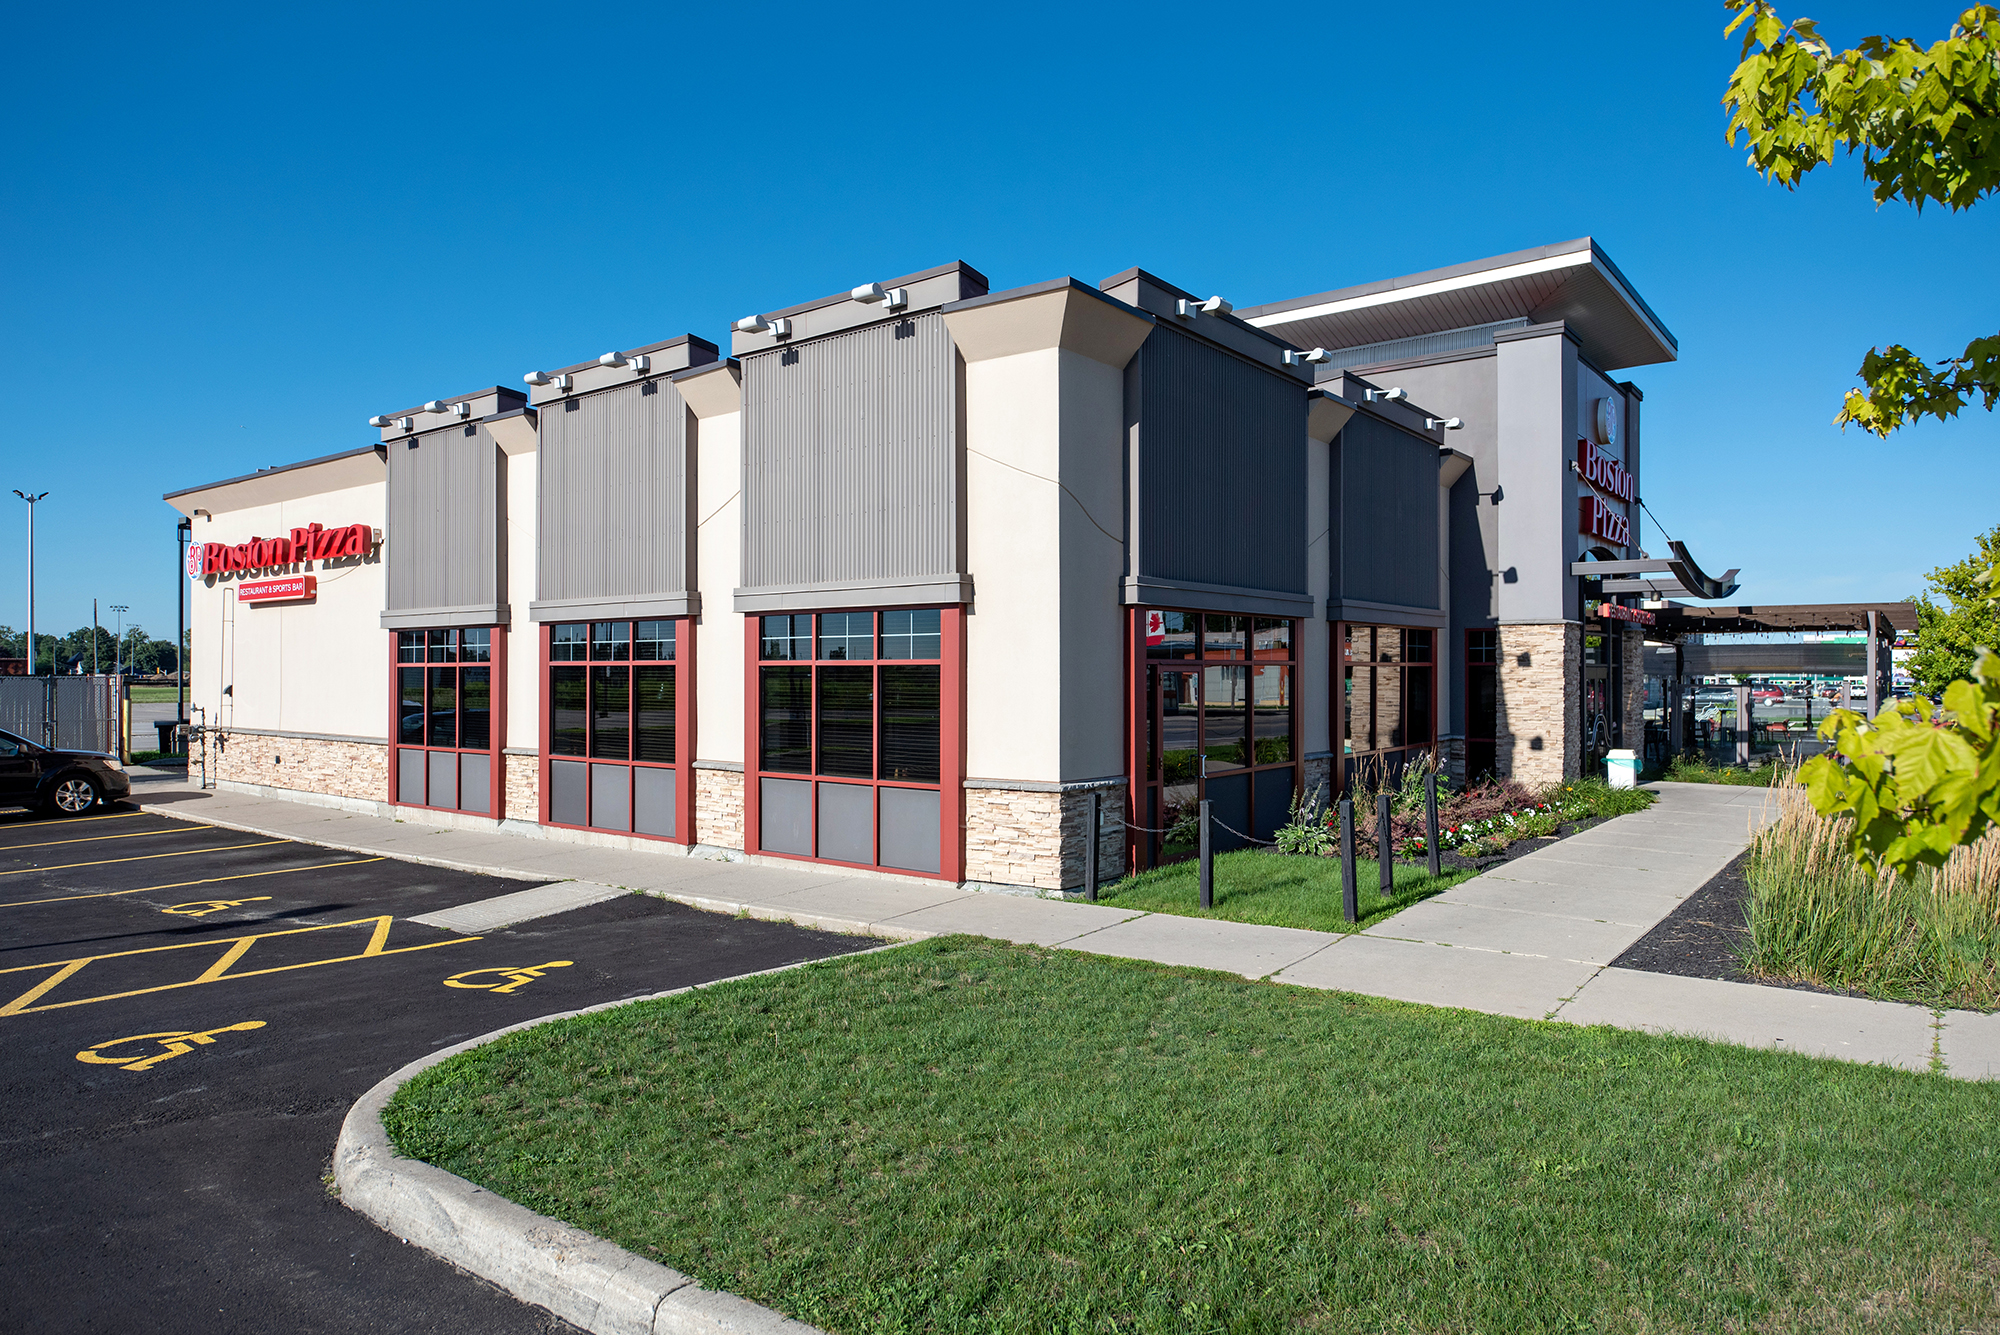 HD Commercial Painting Building Exterior Boston Pizza